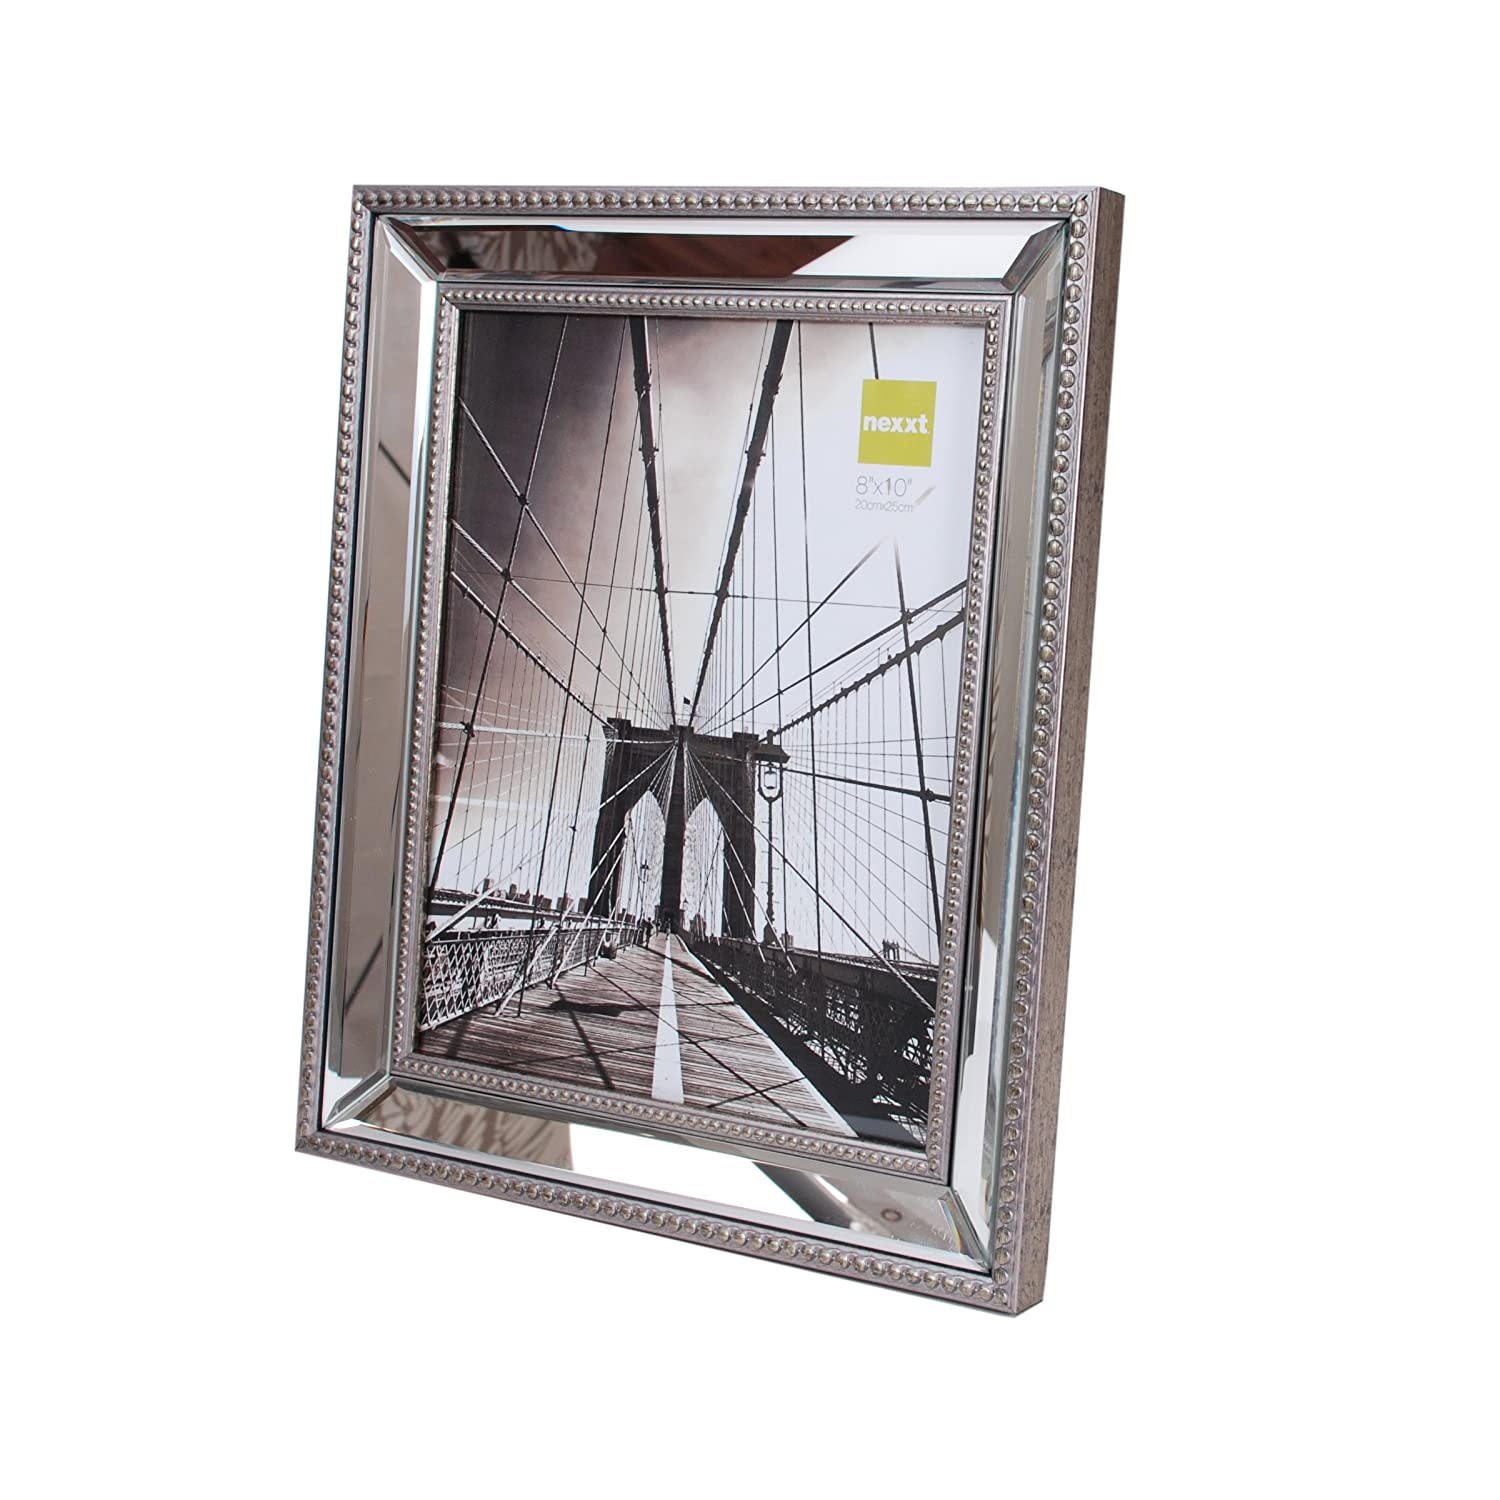 amazoncom kiera grace sutton mirrored picture frame 8 by 10 inch champagne home kitchen